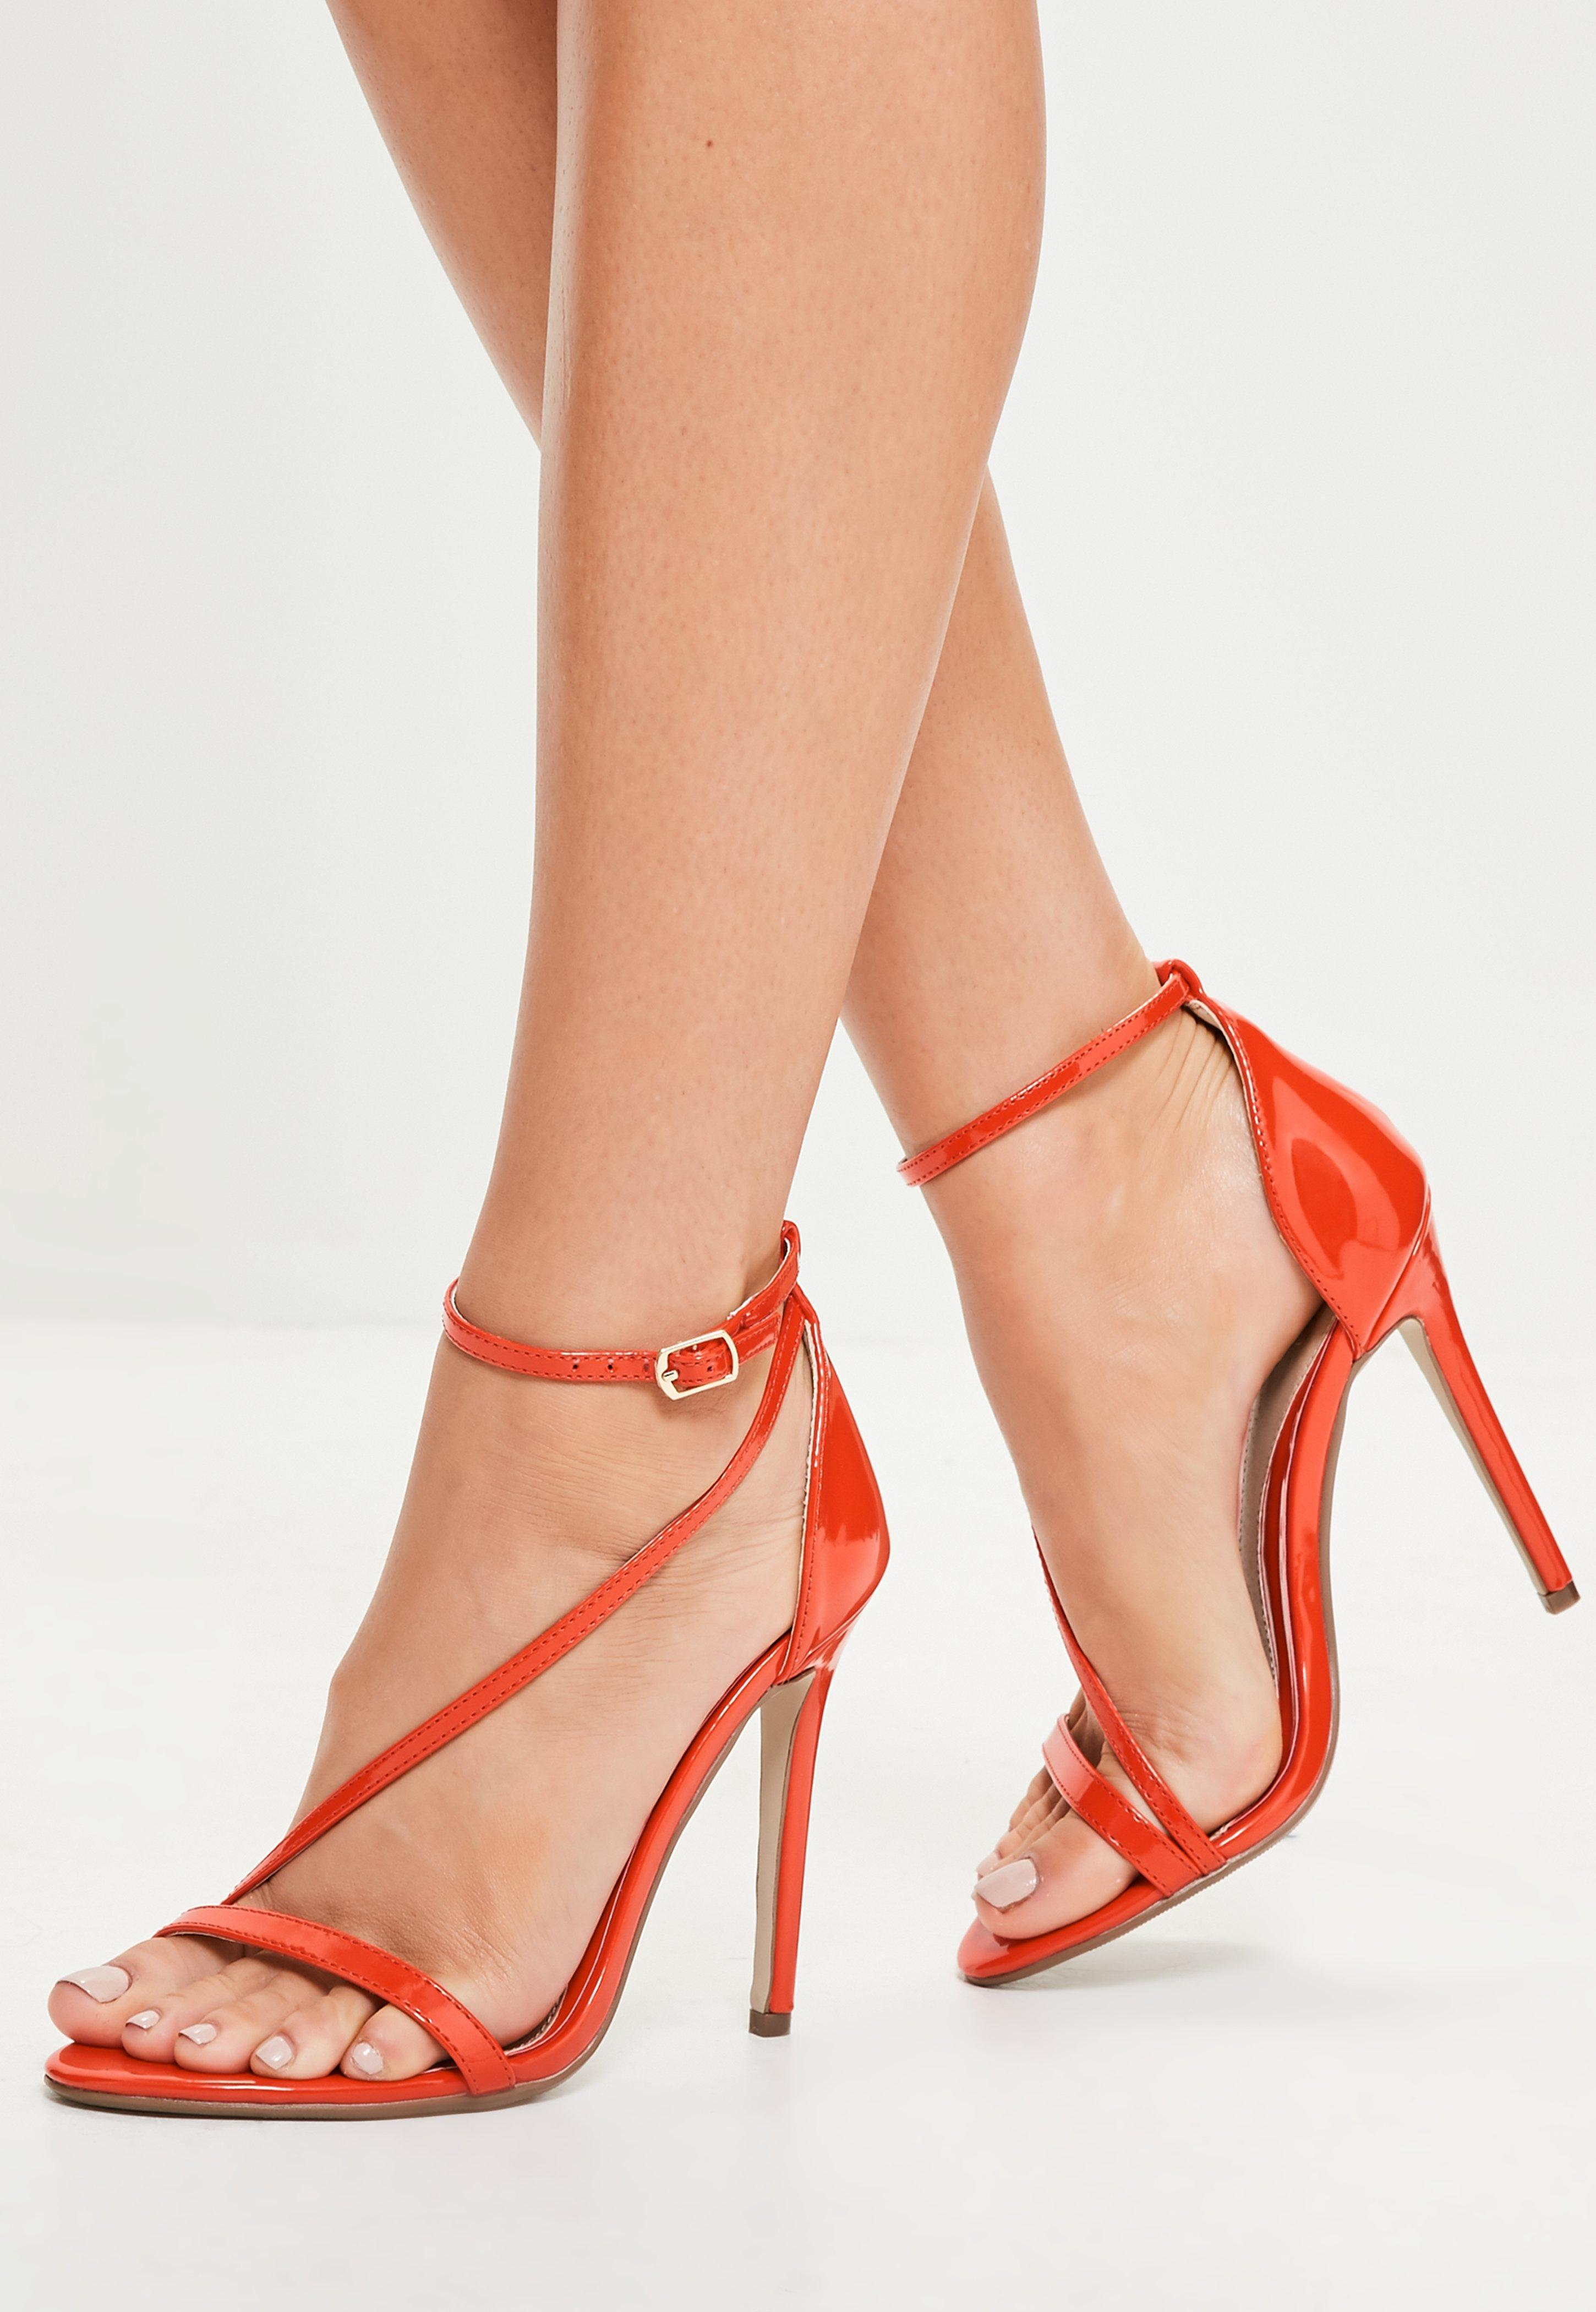 99a2f2cd59a676 Missguided Orange Asymmetric Barely There Heels in Orange - Lyst